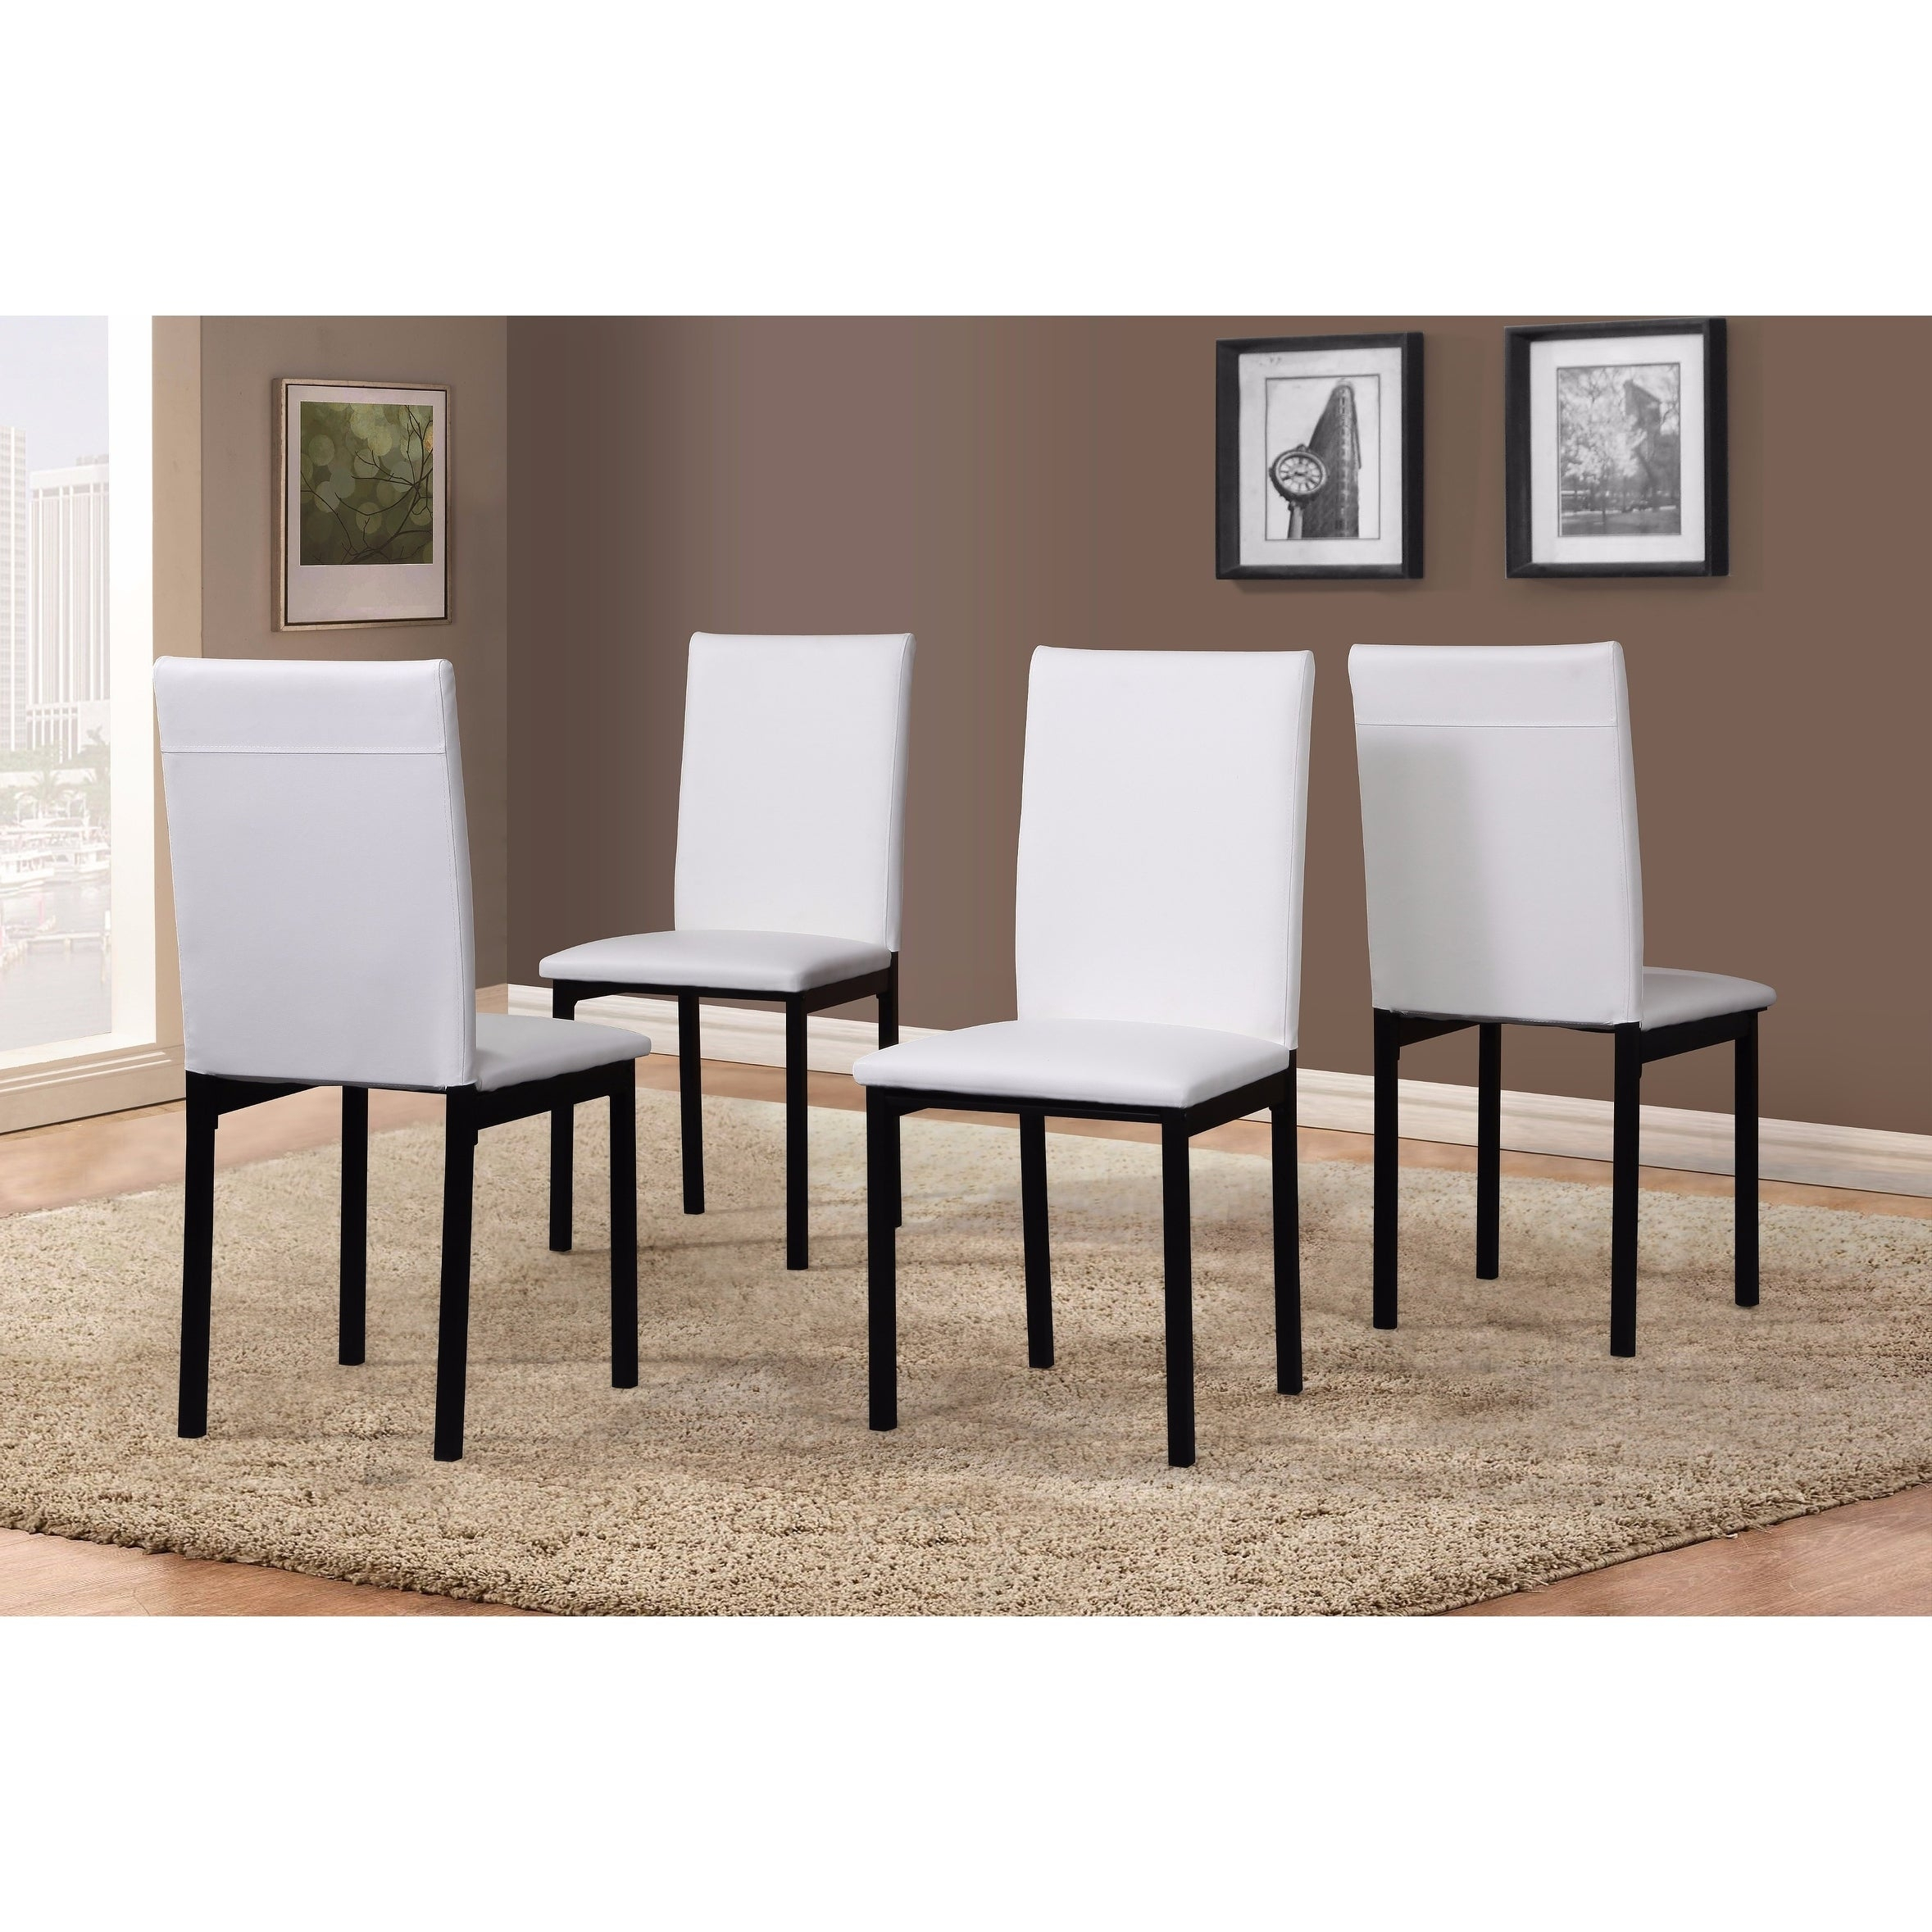 Noyes Faux Leather Seat Metal Frame Black Dining Chairs, Set Of 4 Inside Most Up To Date Noyes 5 Piece Dining Sets (View 12 of 20)